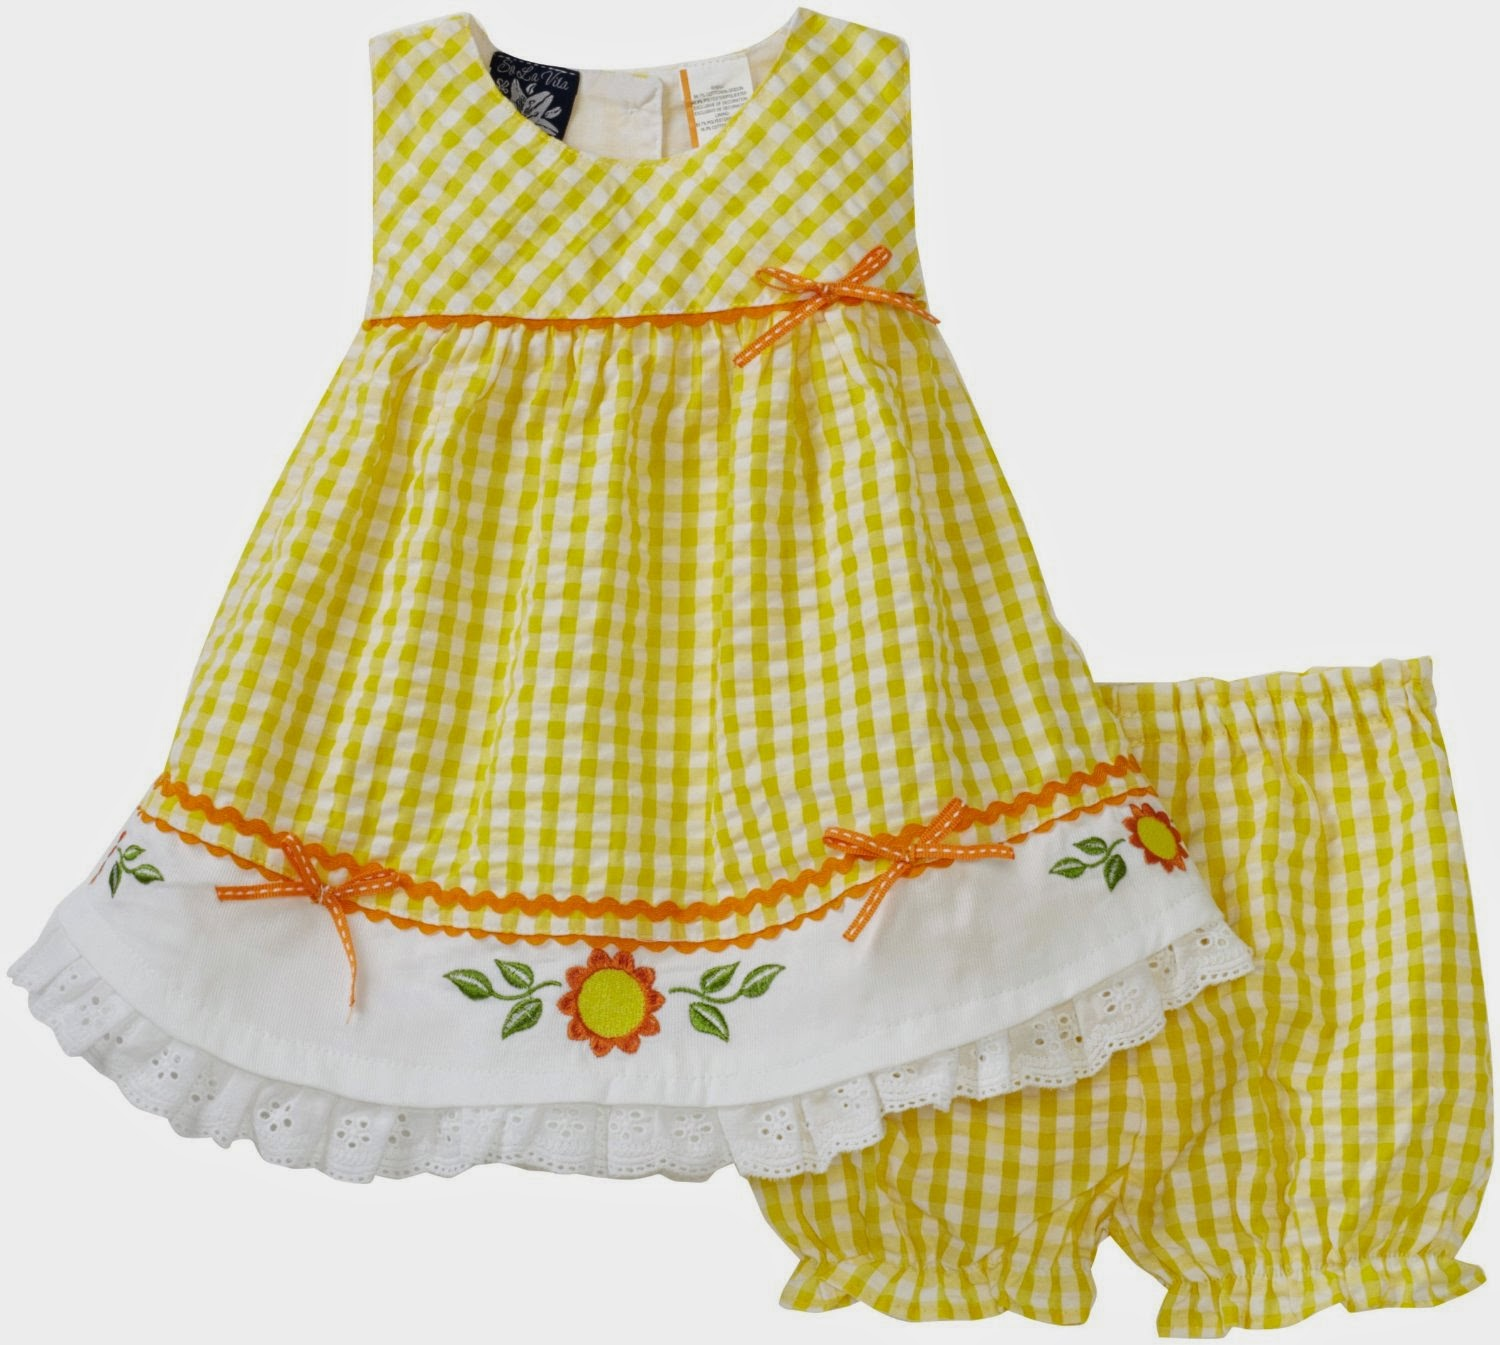 Fashion Arrivals: Latest Stylish Cotton Frocks for Babies 2014